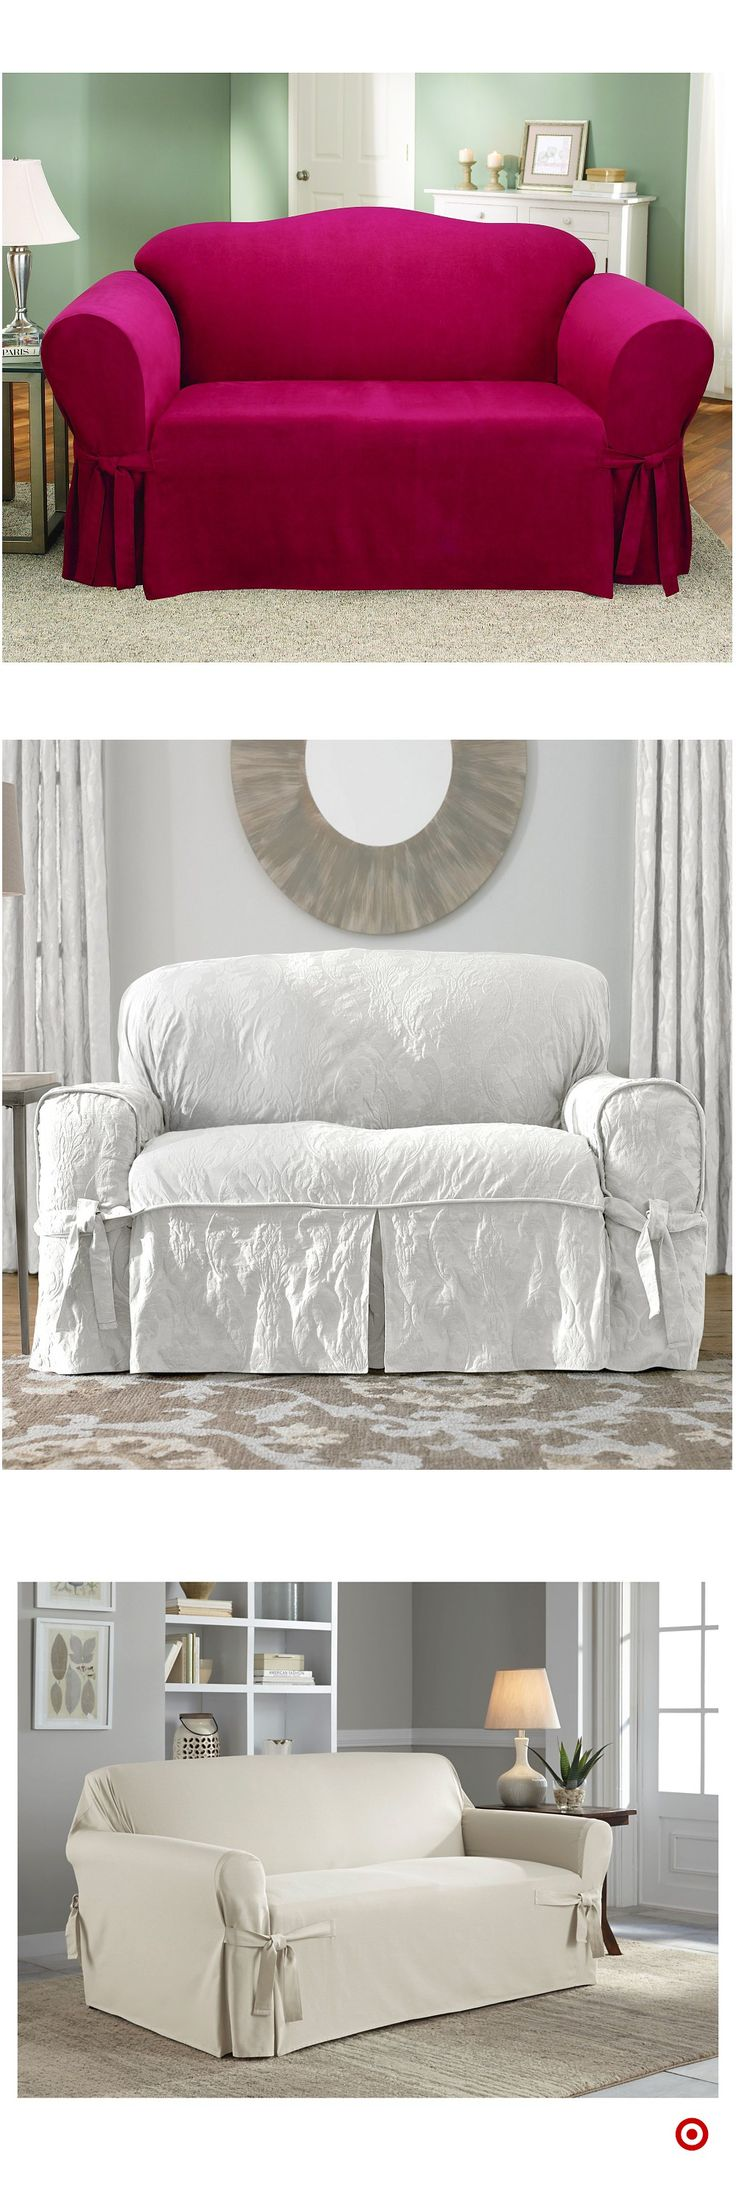 Shop Target for loveseat slipcover you will love at great low prices. Free shipping on orders of $35+ or free same-day pick-up in store.